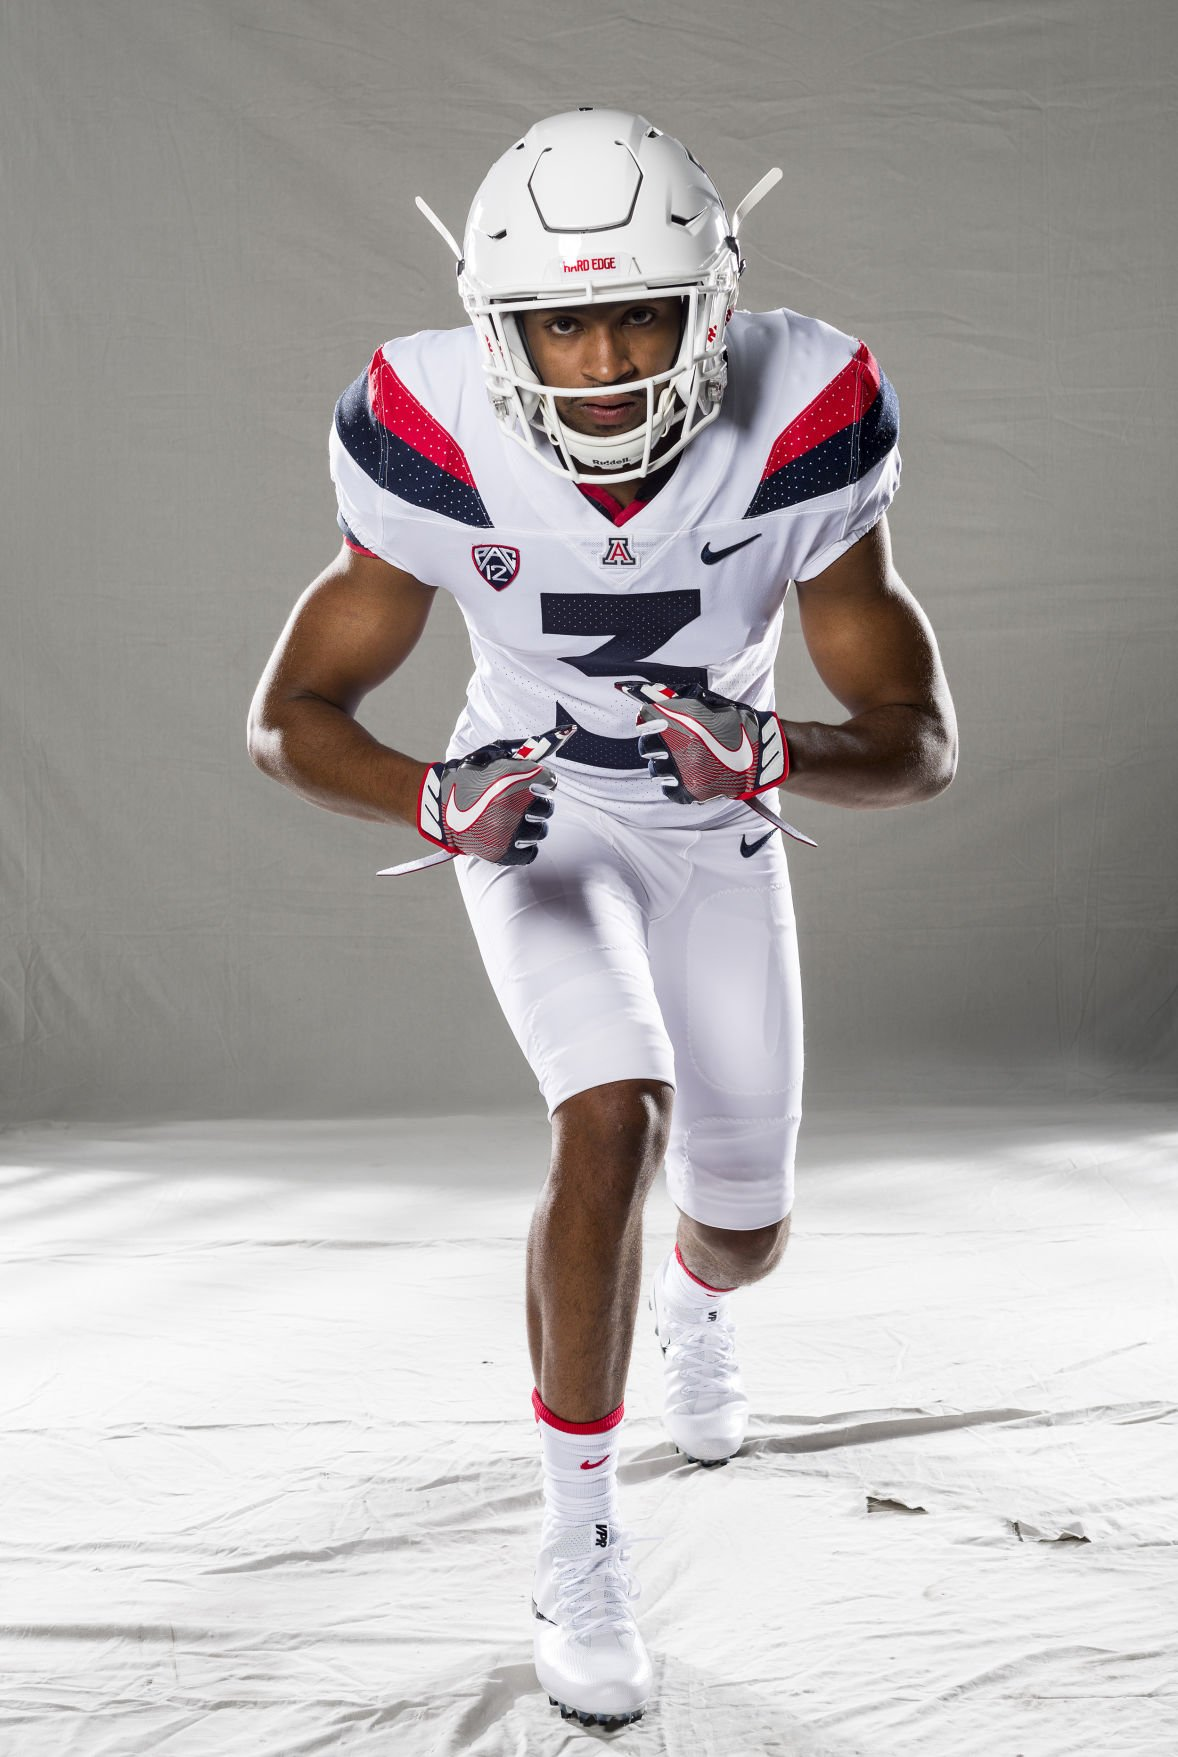 Arizona Wildcats' new uniforms have fair share of fans, haters ...